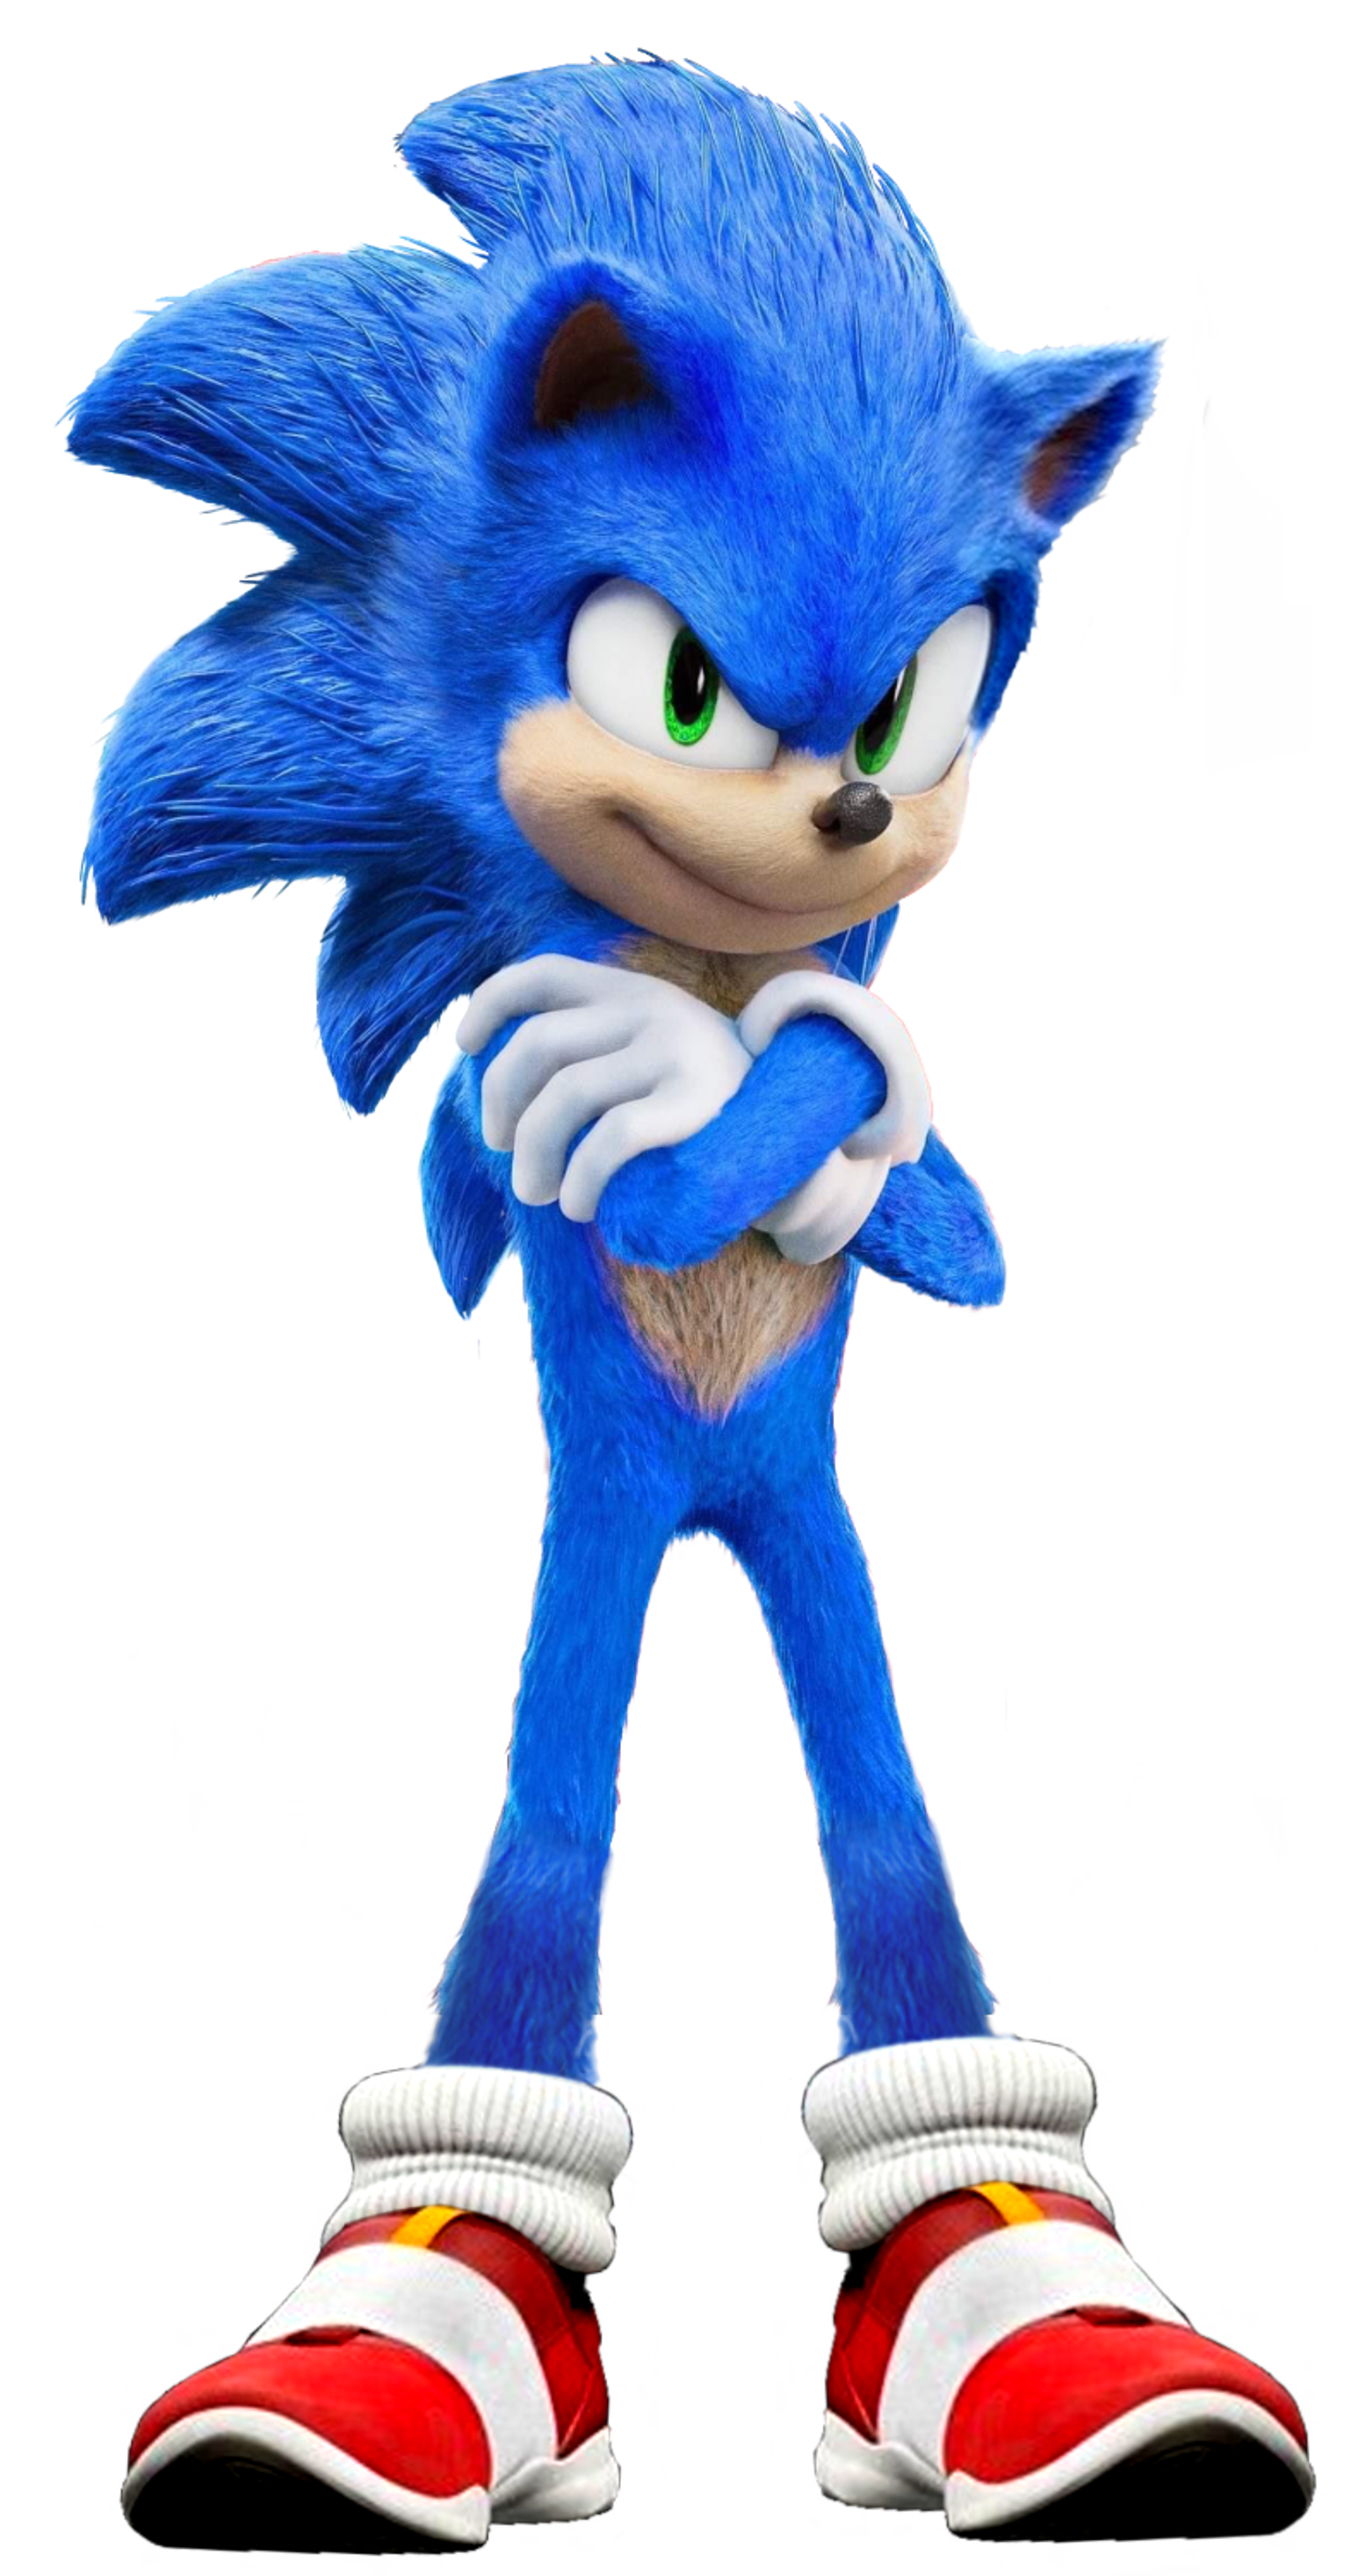 Sonic The Hedgehog Movie 2 Png By Captain Kingsman16 On Deviantart